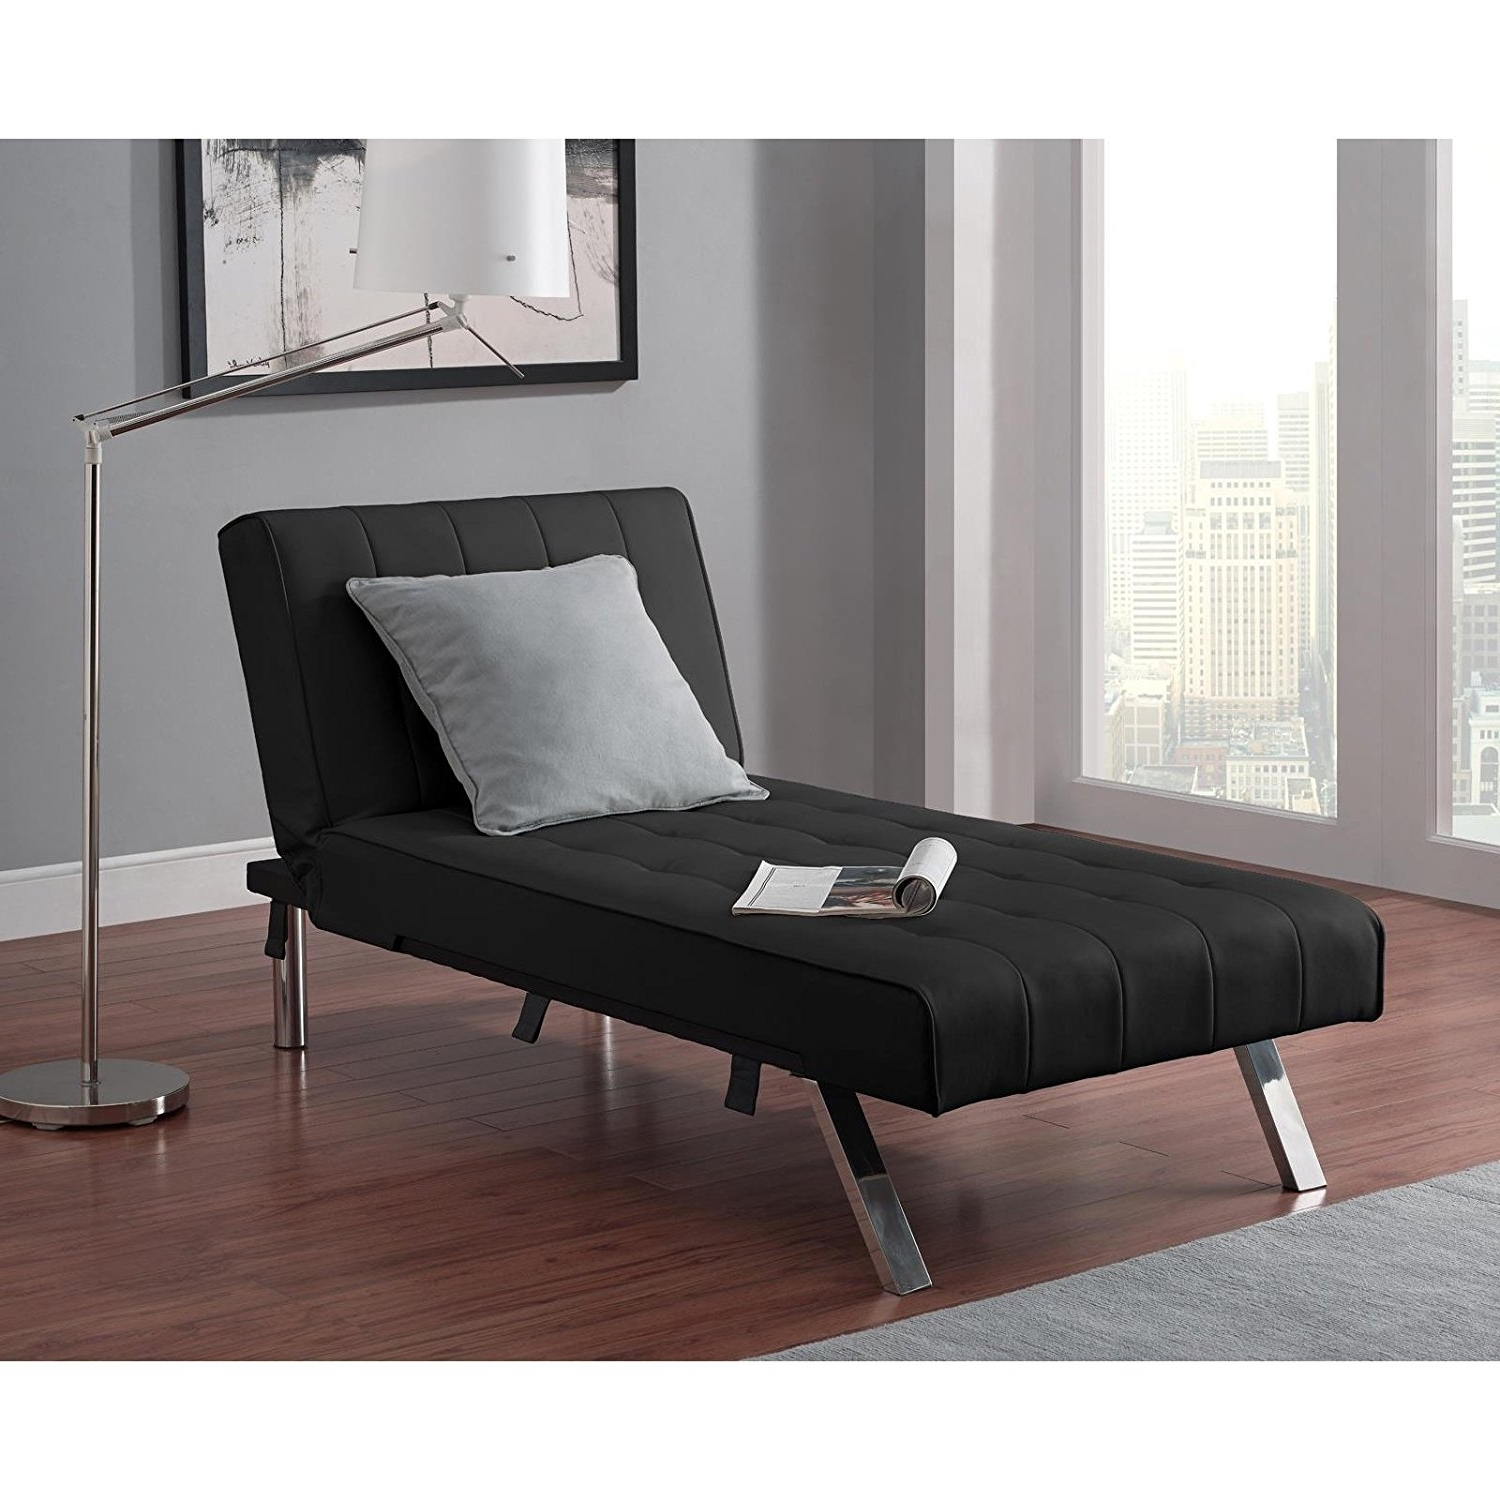 Chaise Lounge Beds Inside Best And Newest Amazon: Emily Futon With Chaise Lounger Super Bonus Set Black (View 6 of 15)